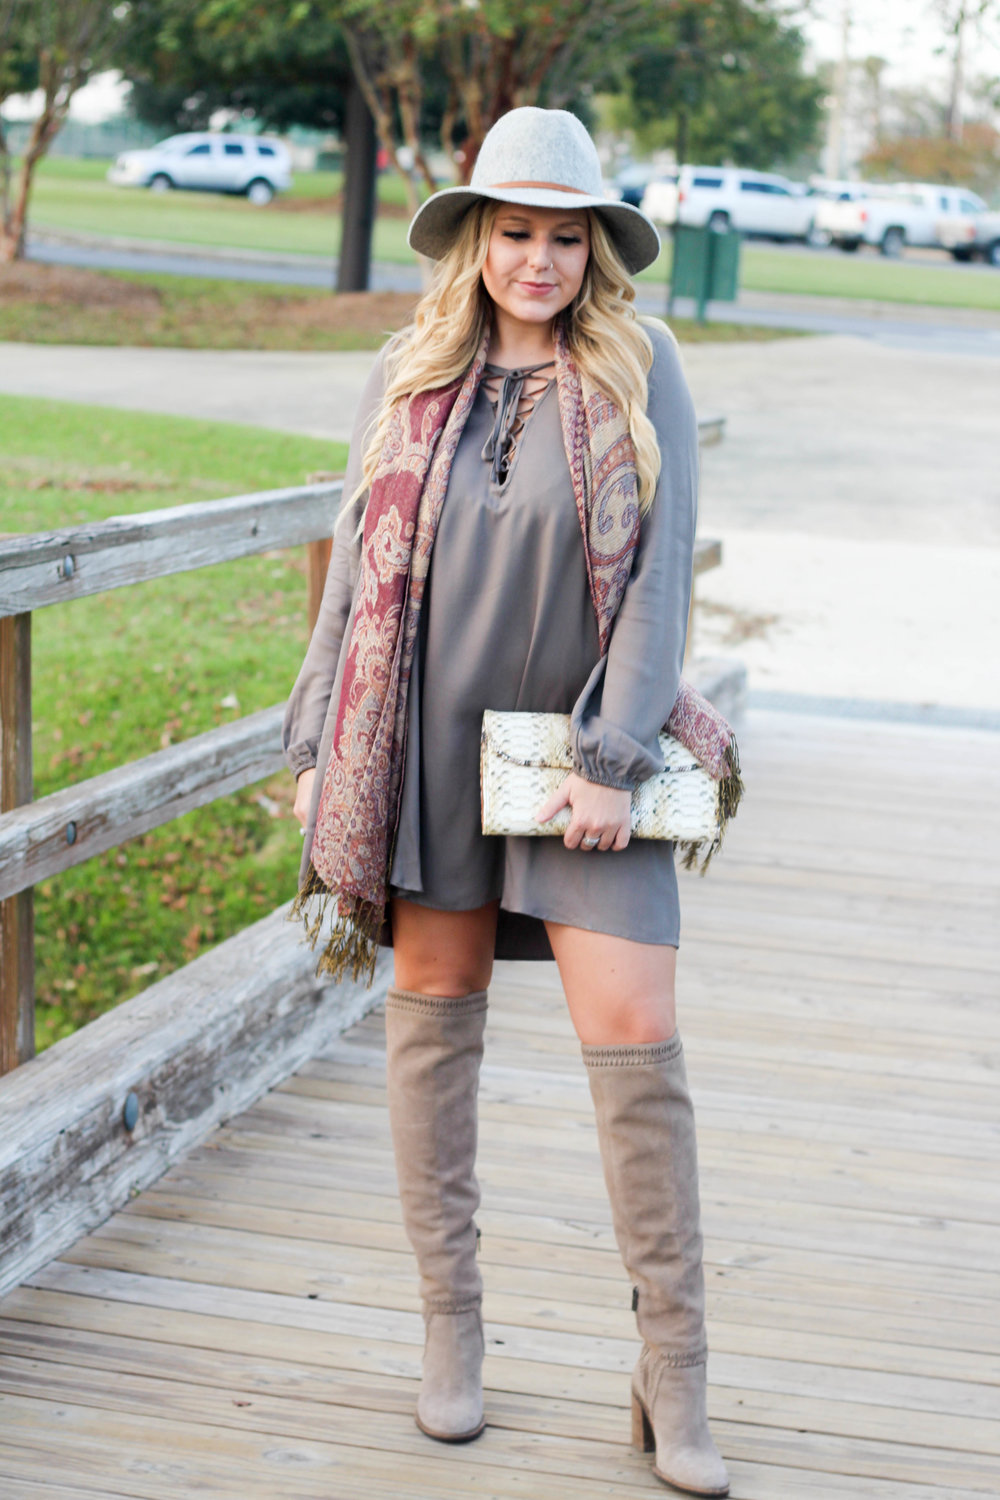 Hat:  Target  / Dress:  Tobi  / Scarf: Old / Boots:  Nordstrom  / Clutch: Old